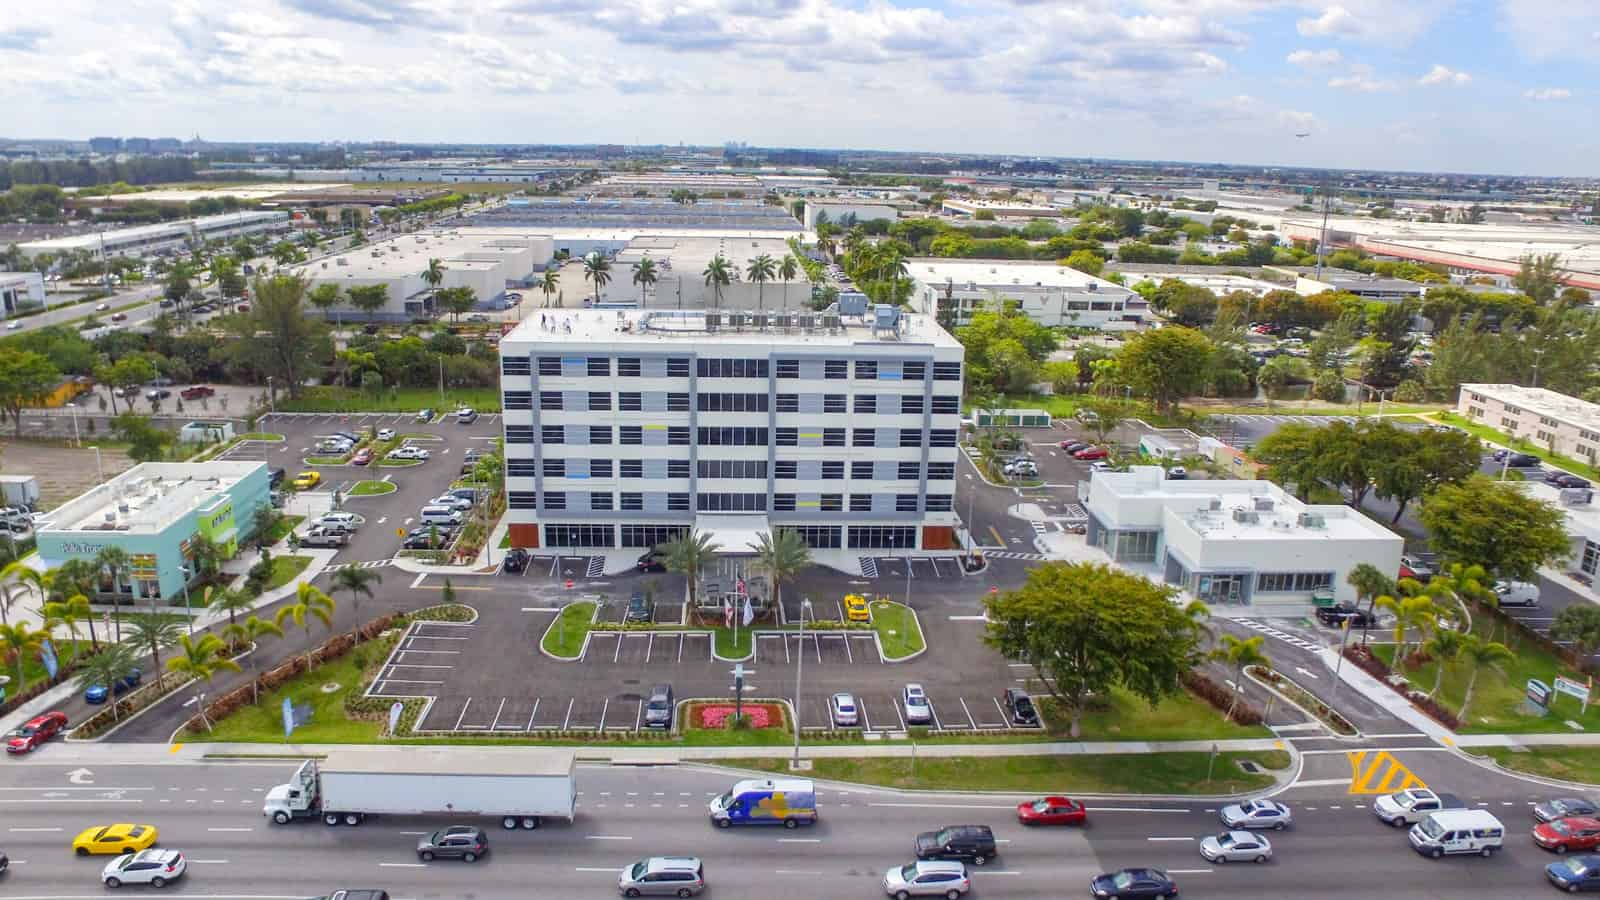 Aloft Miamia hotel front view next to highway taken from a drone